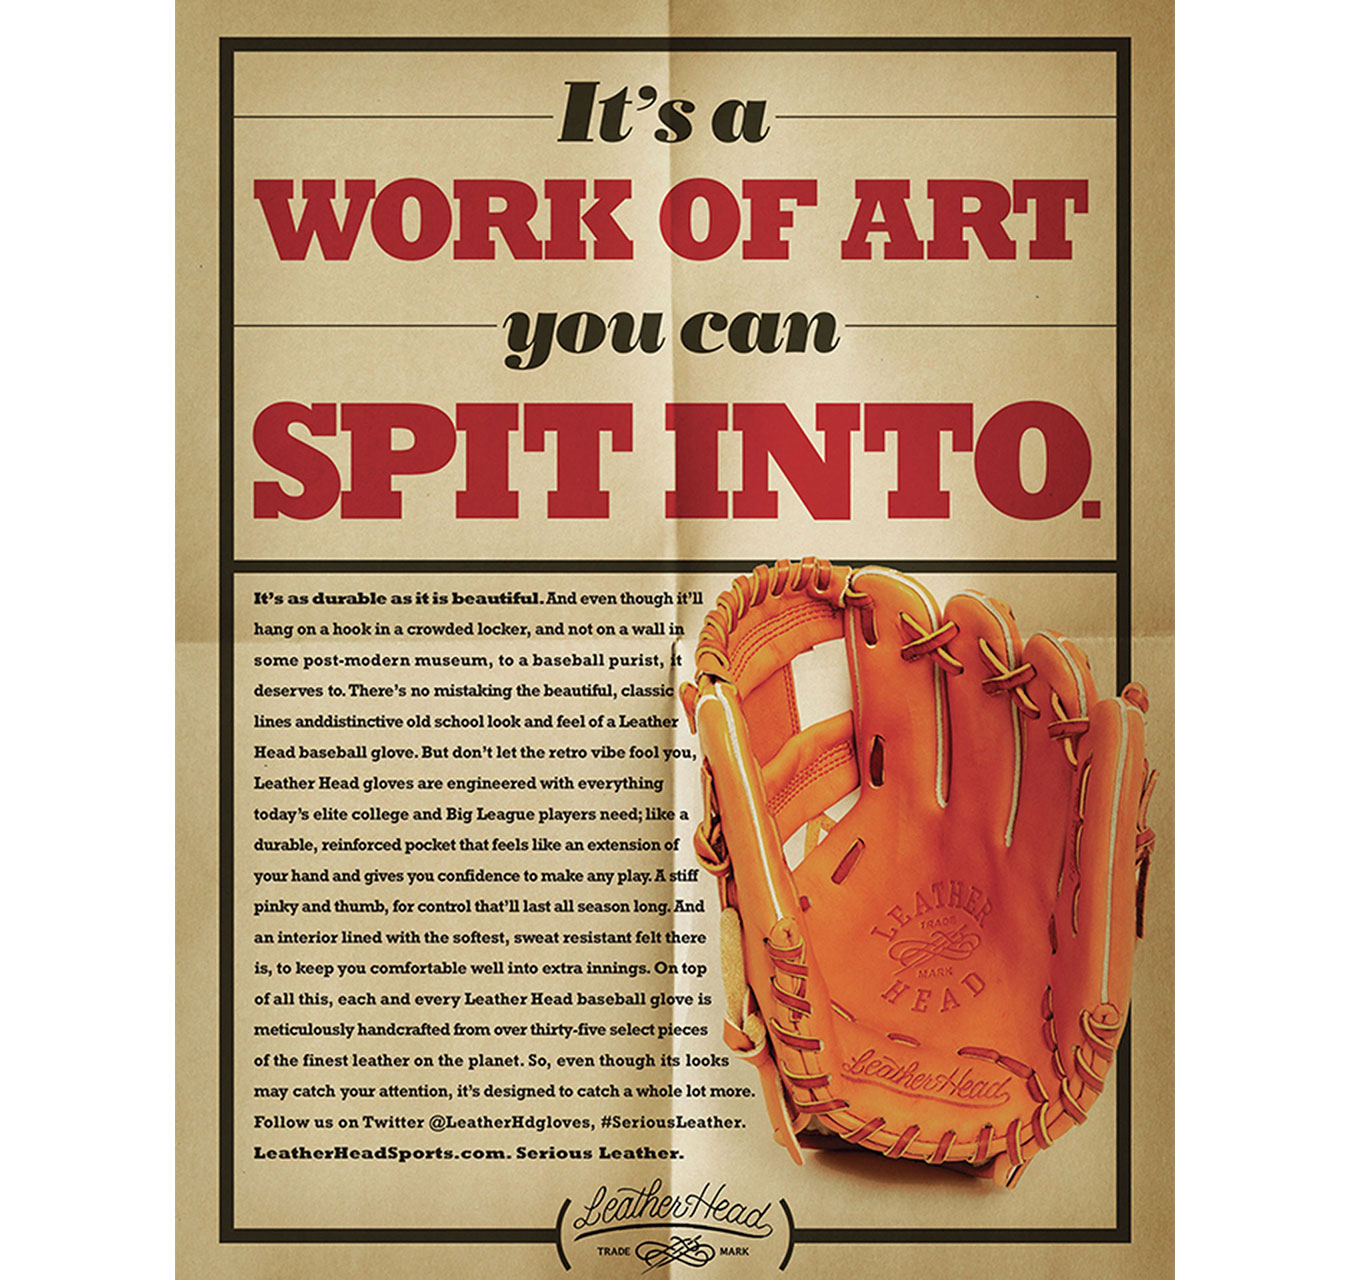 Ad for premium Leather Head baseball gloves